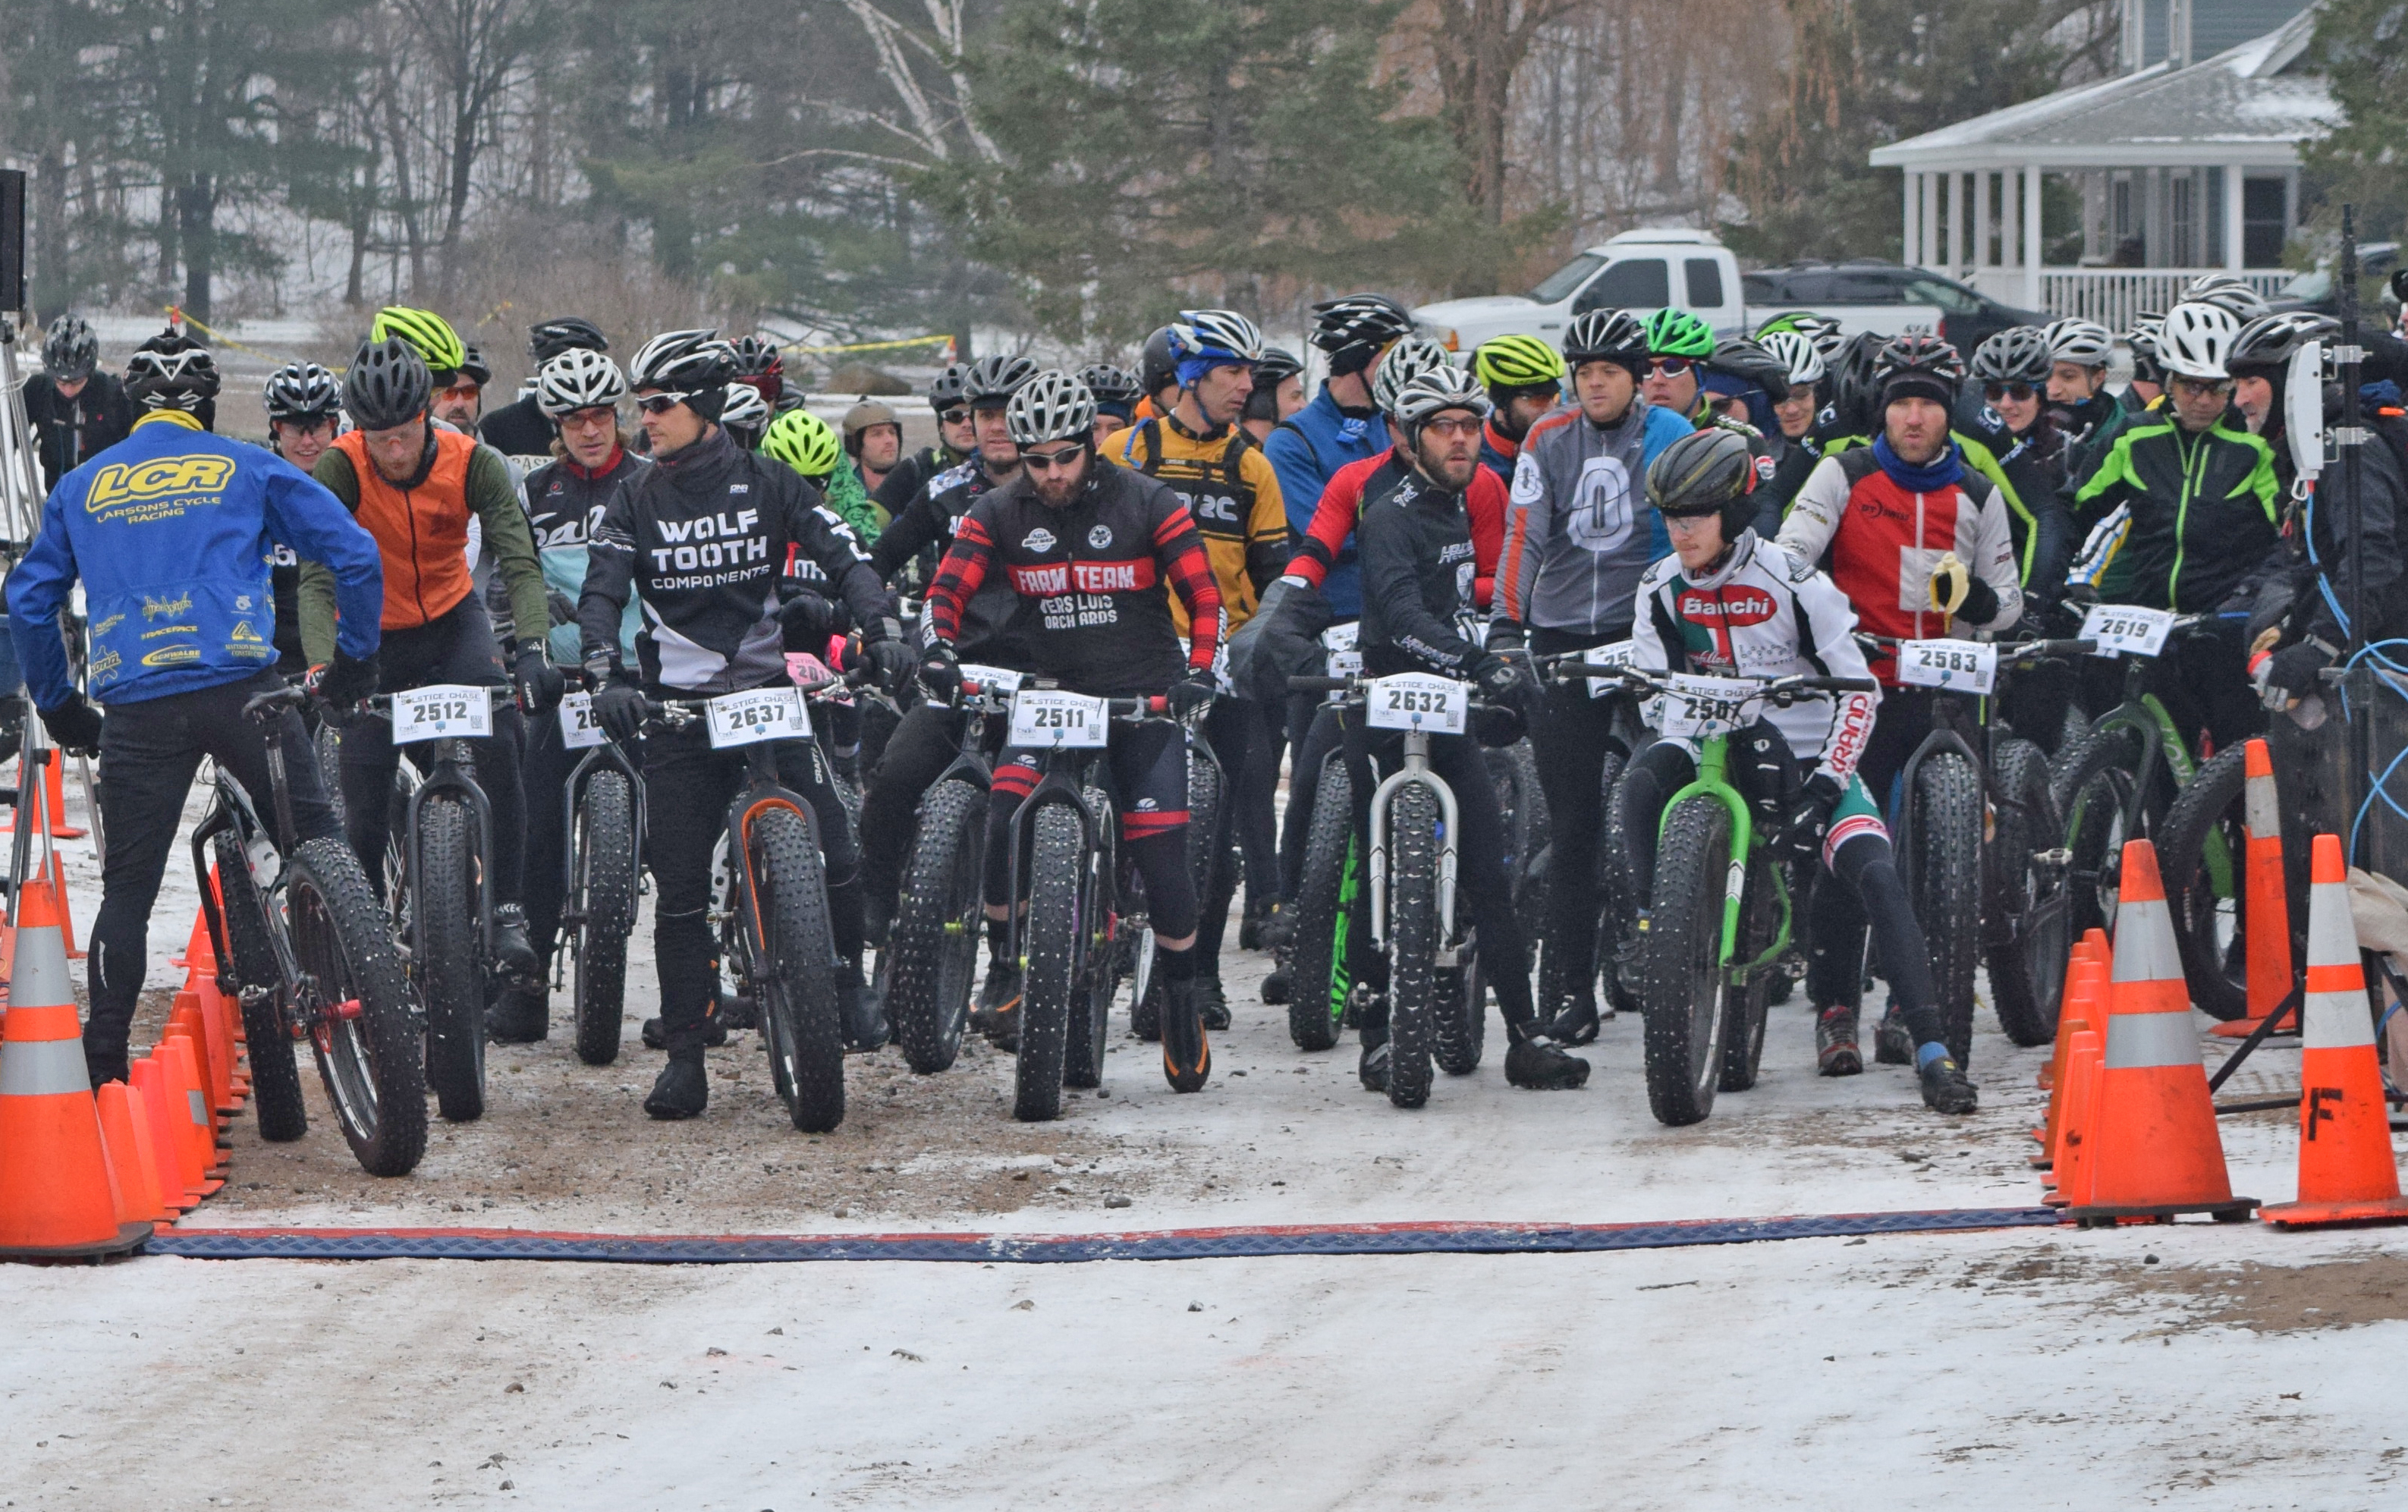 Solstice Chase Start 2014